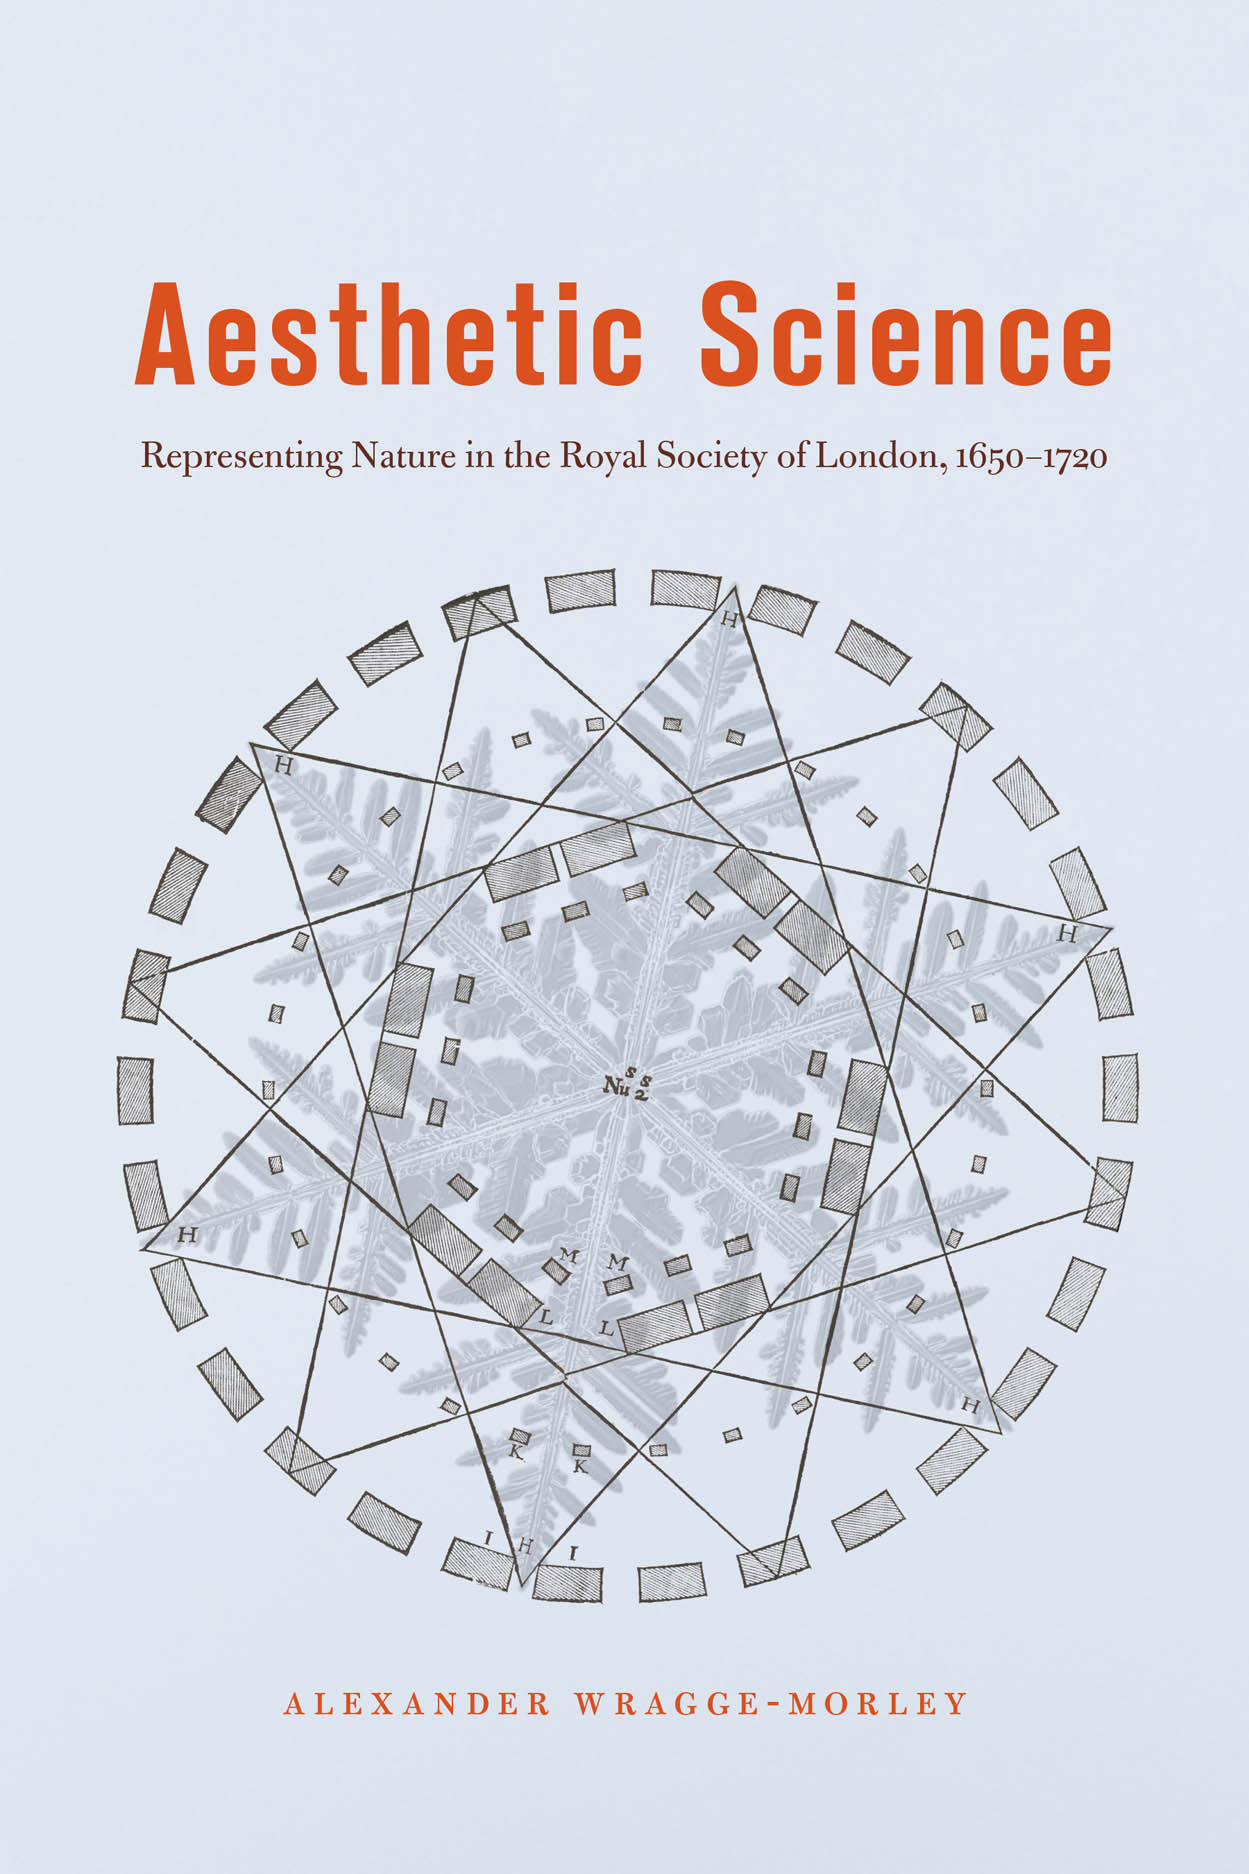 Aesthetic Science: Representing Nature in the Royal Society of London, 1650-1720